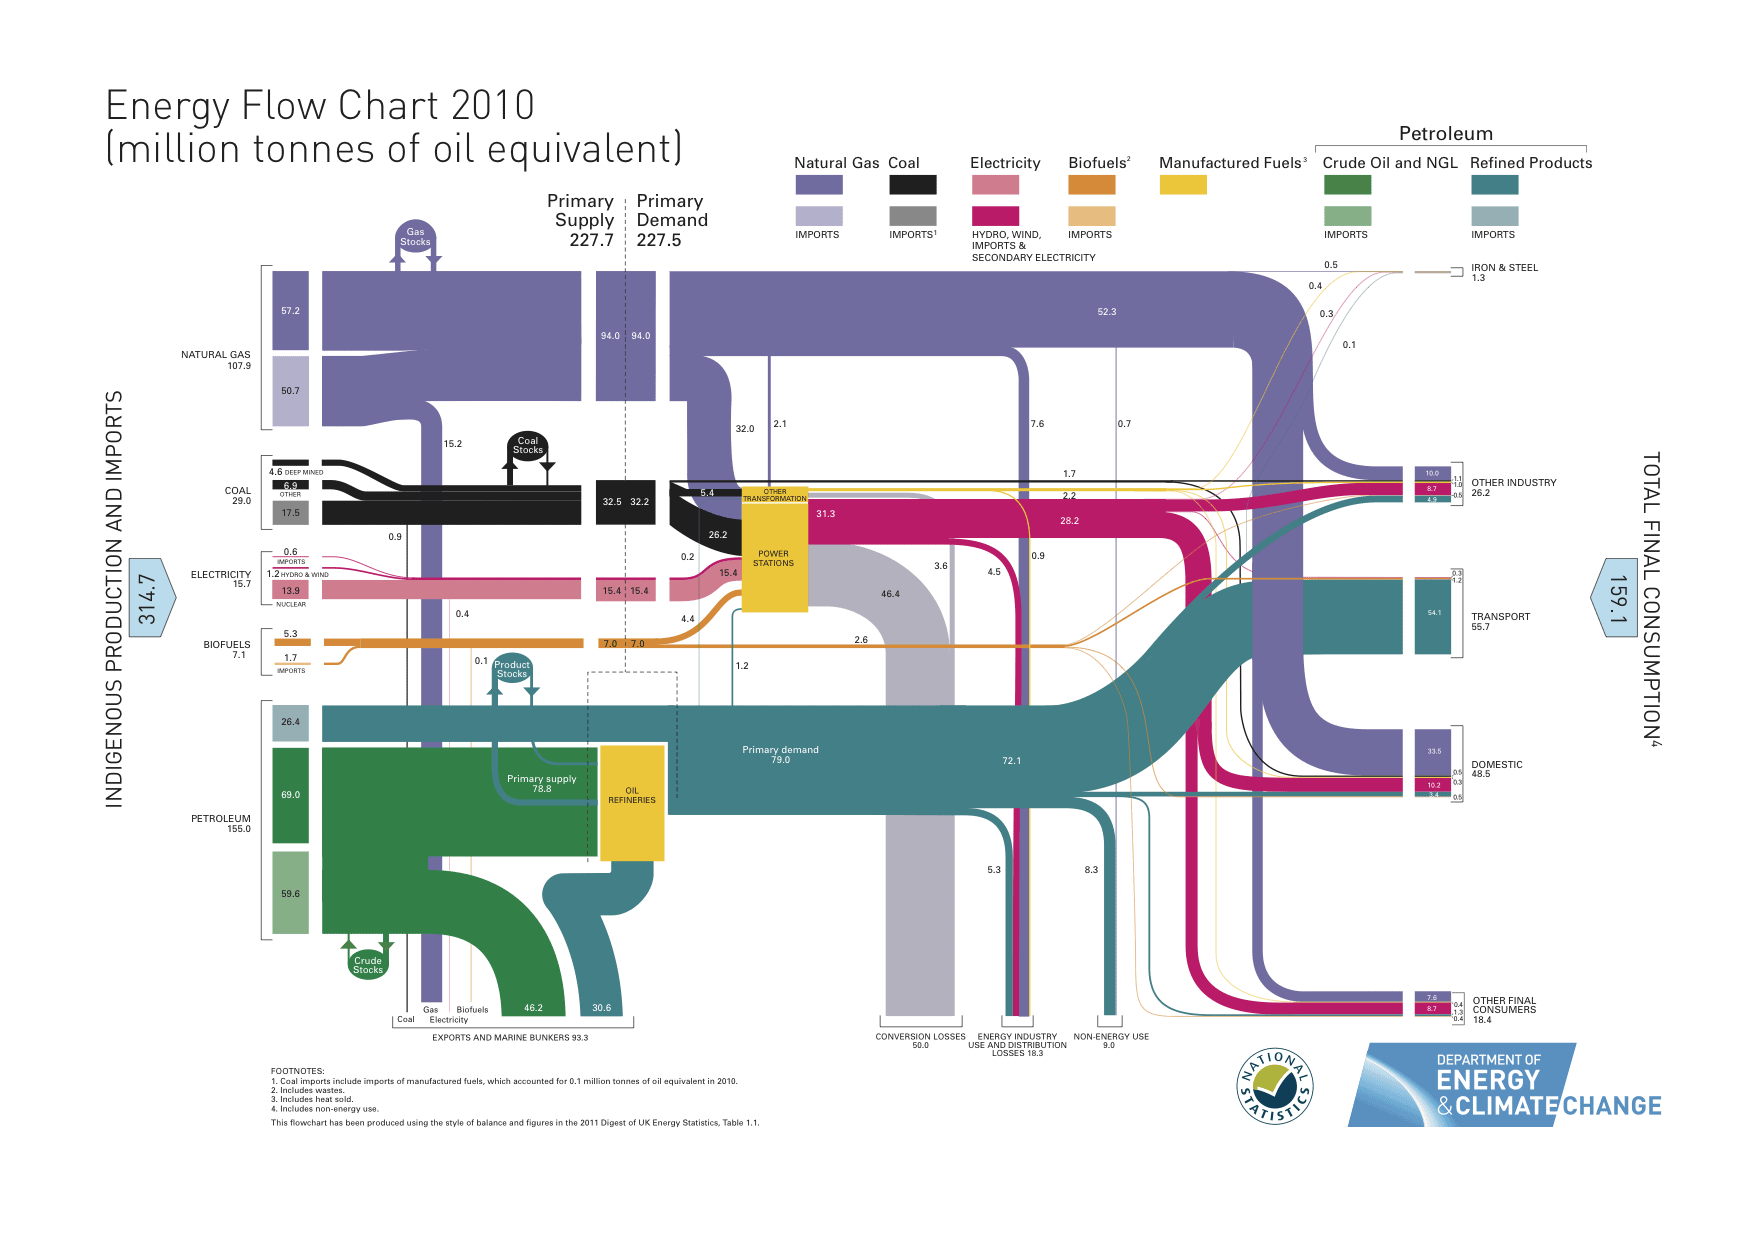 UK energy flow chart 2010 by DECC